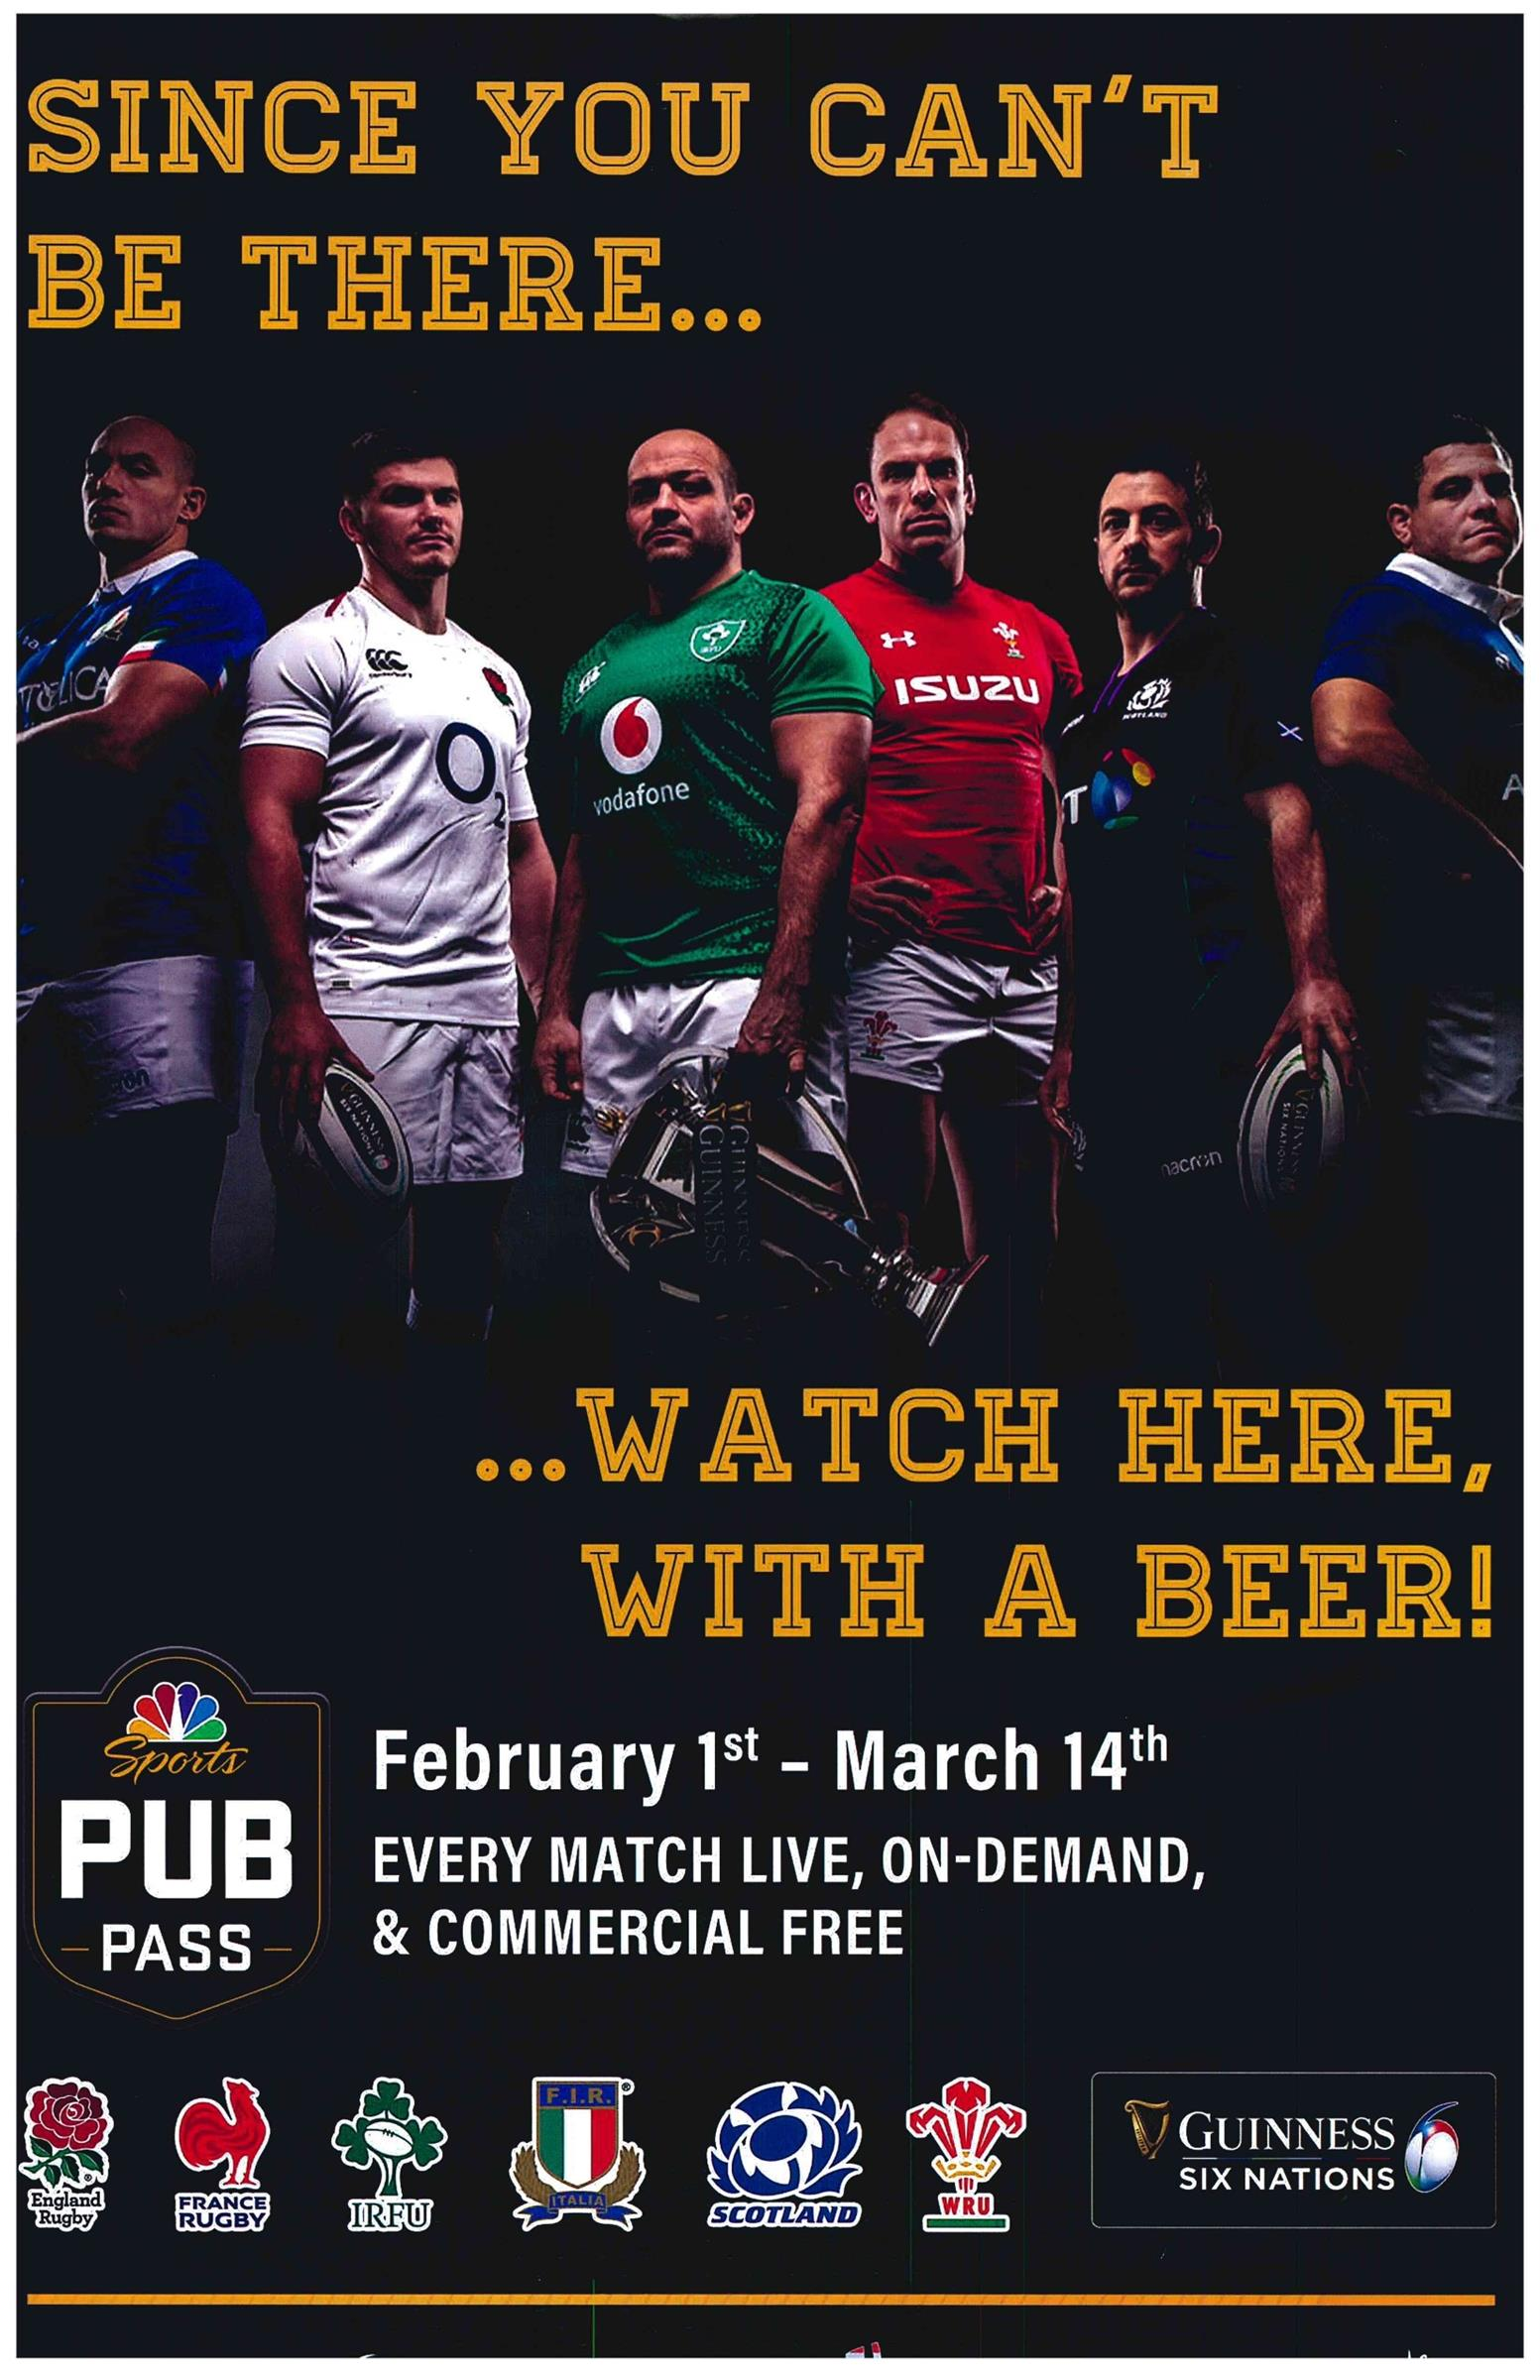 ince you cant be there...watch here, with a beer! February 1st - March 14th, Every match live, on-demand, and commercial free